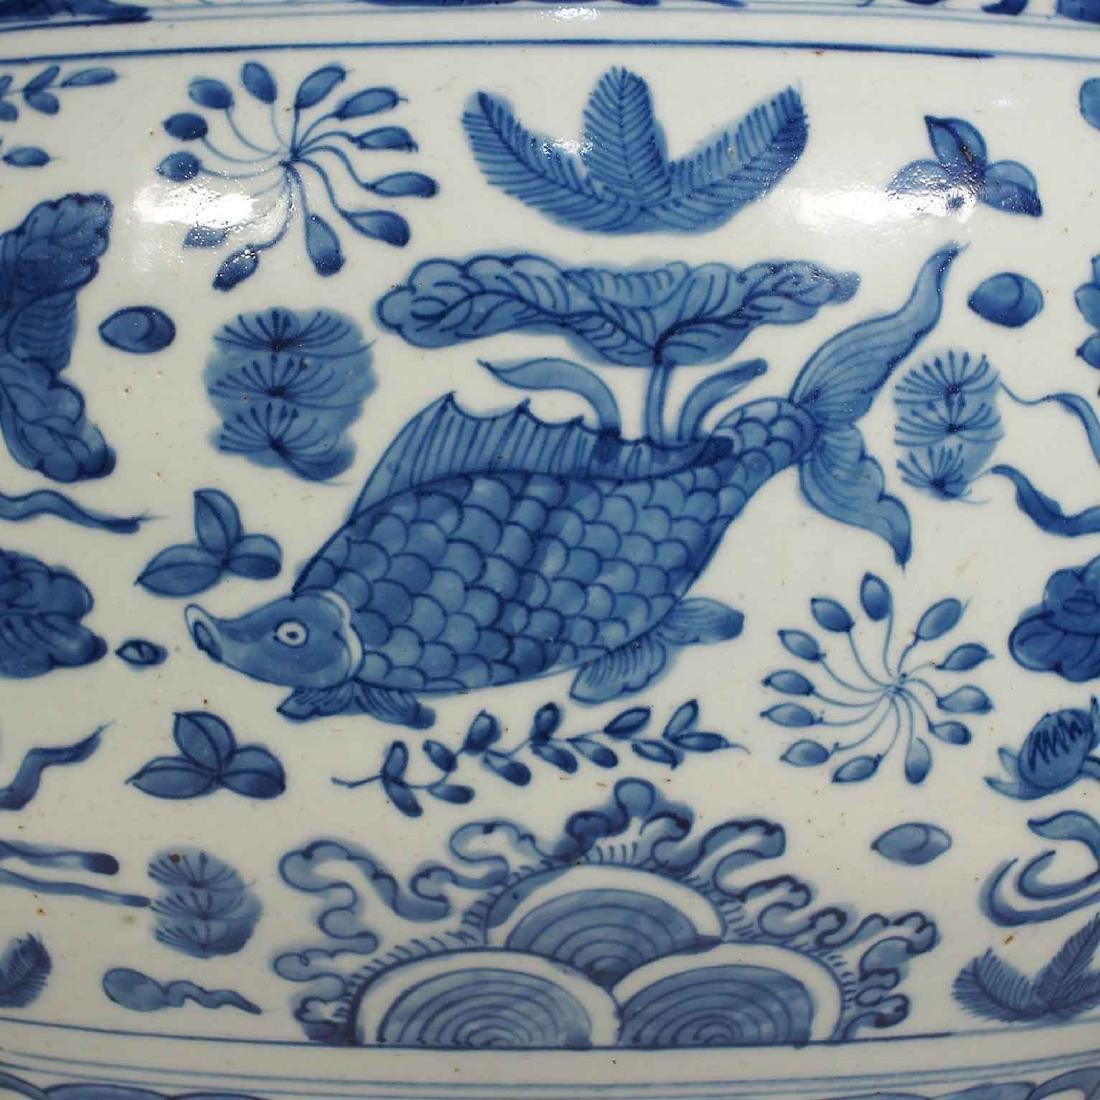 Jar with Fishes in a Pond Design, Wanli, Ming Dynasty - 5